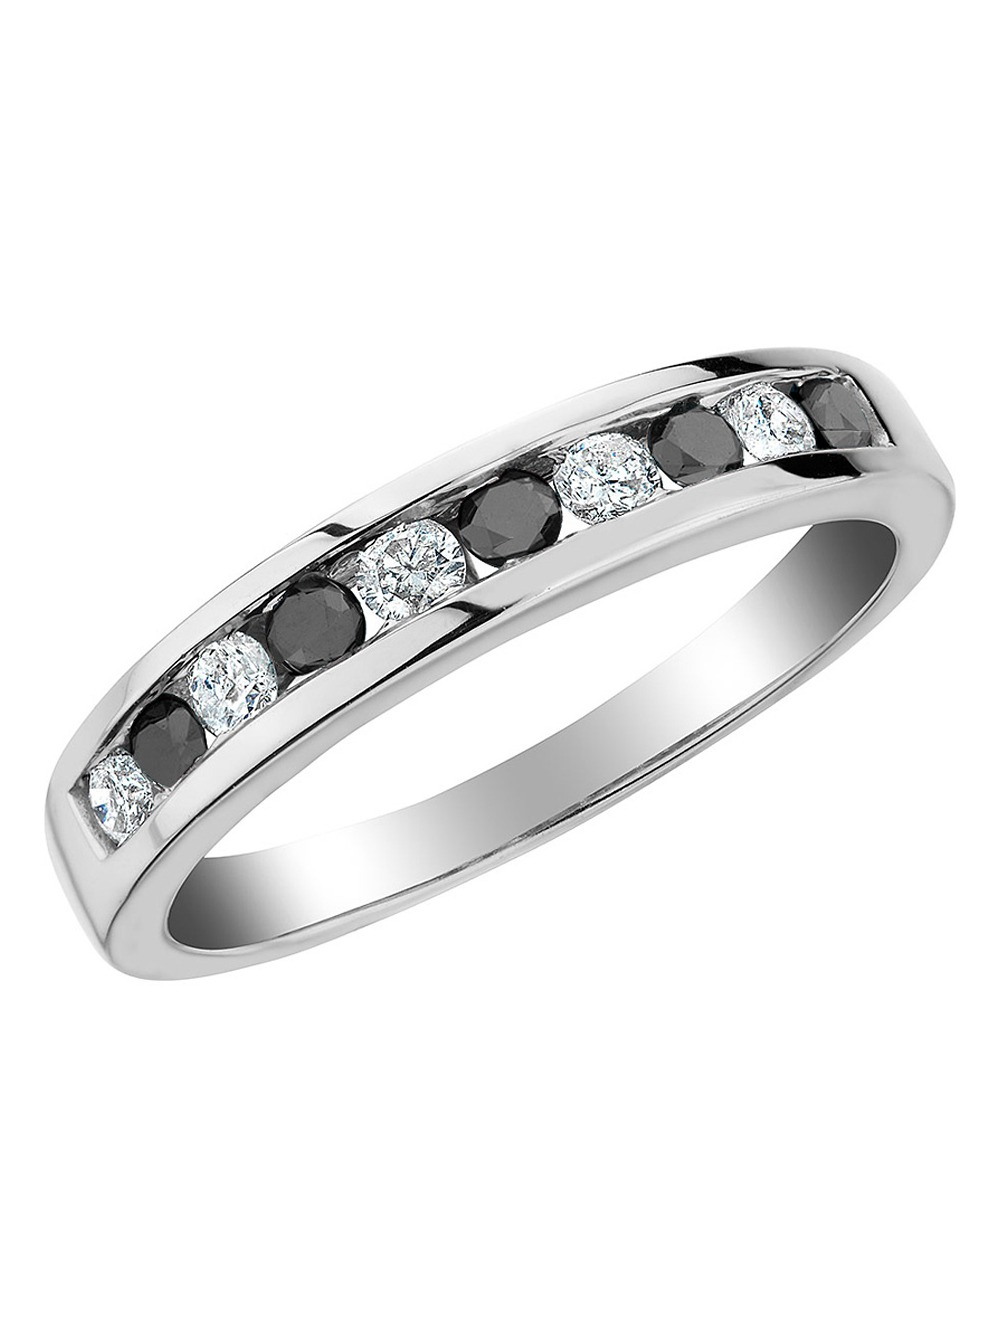 White And Enhanced Black Diamond Ring 1/2 Carat (ctw H I, I1 Intended For 2019 Enhanced Black And White Diamond Anniversary Ring In White Gold (View 9 of 25)